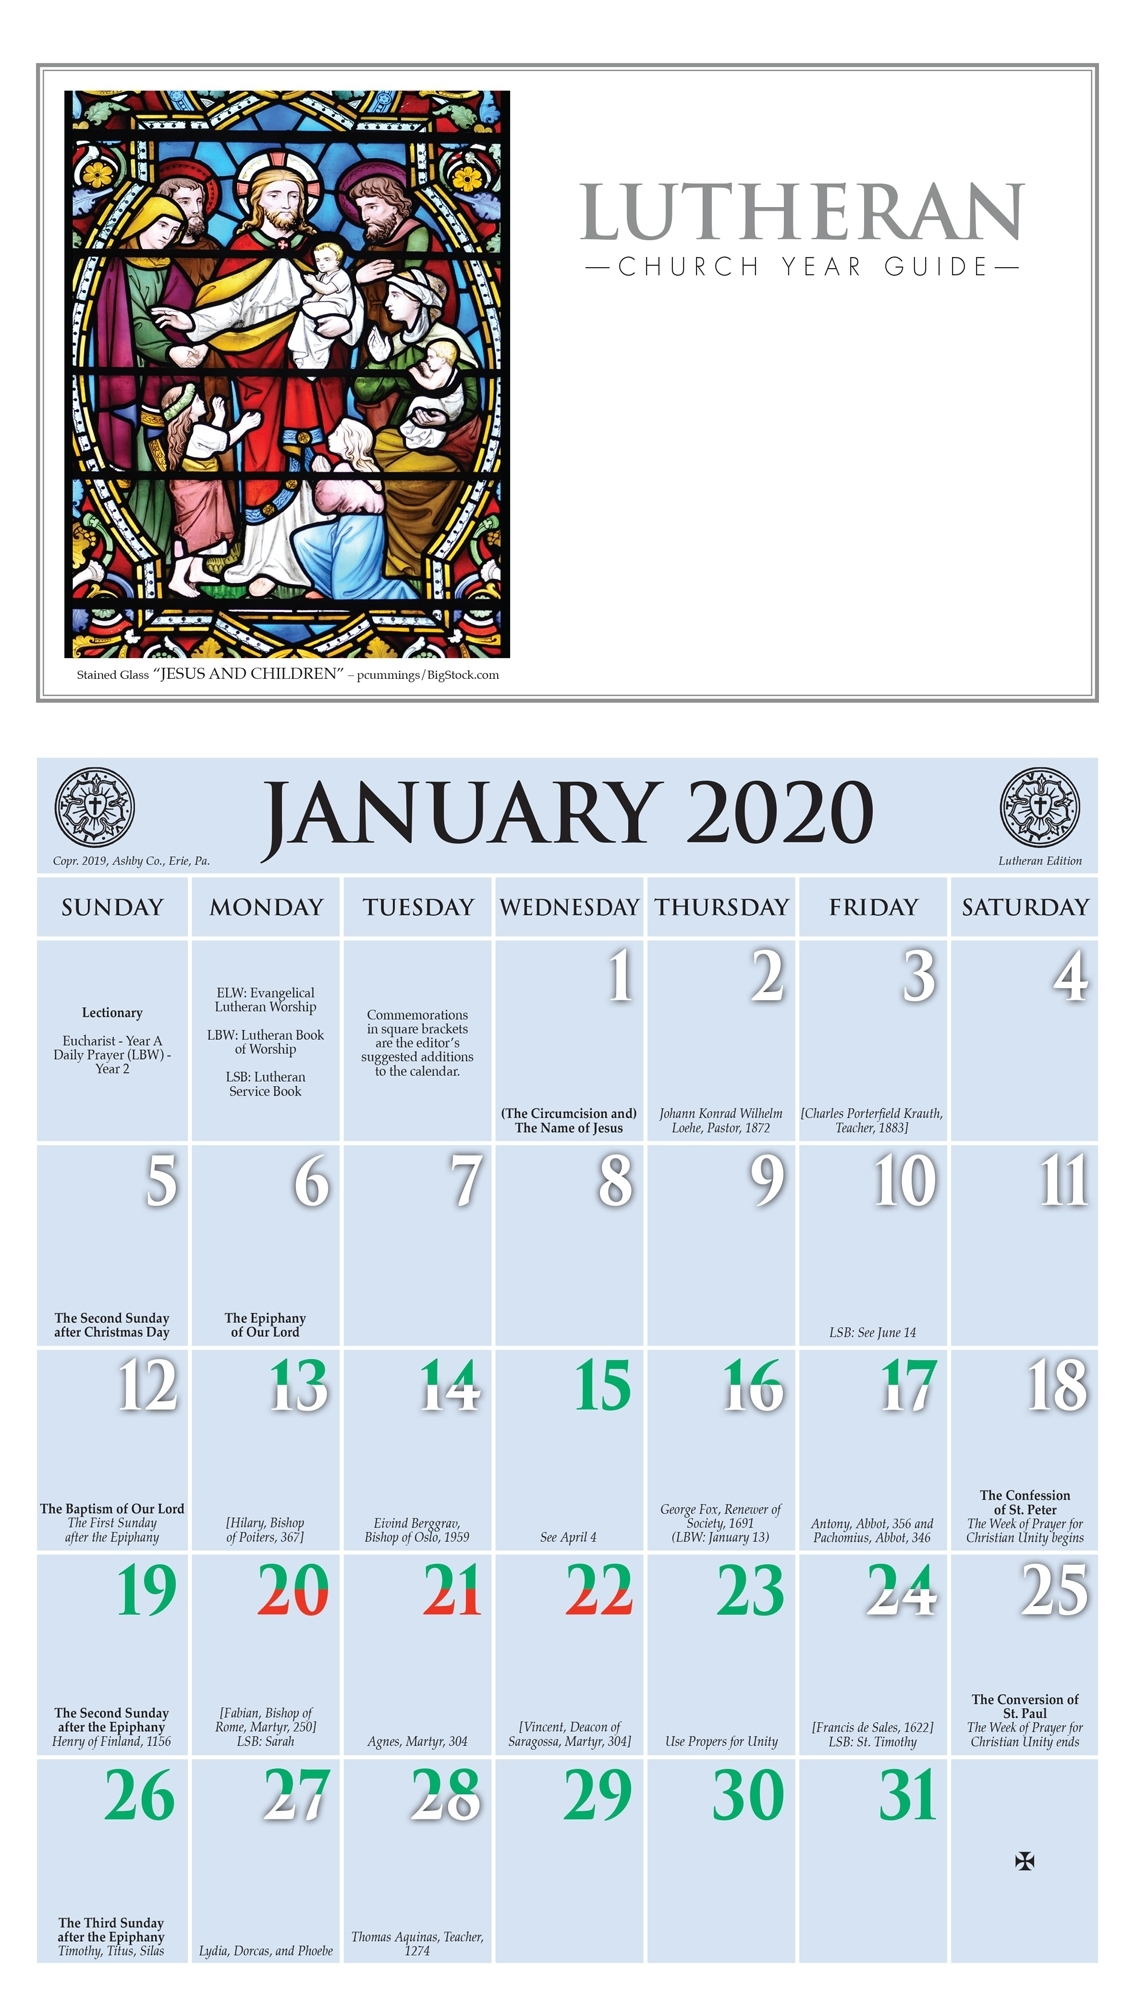 2020 Church Year Calendar throughout Free Liturgical Church Calendar For 2020